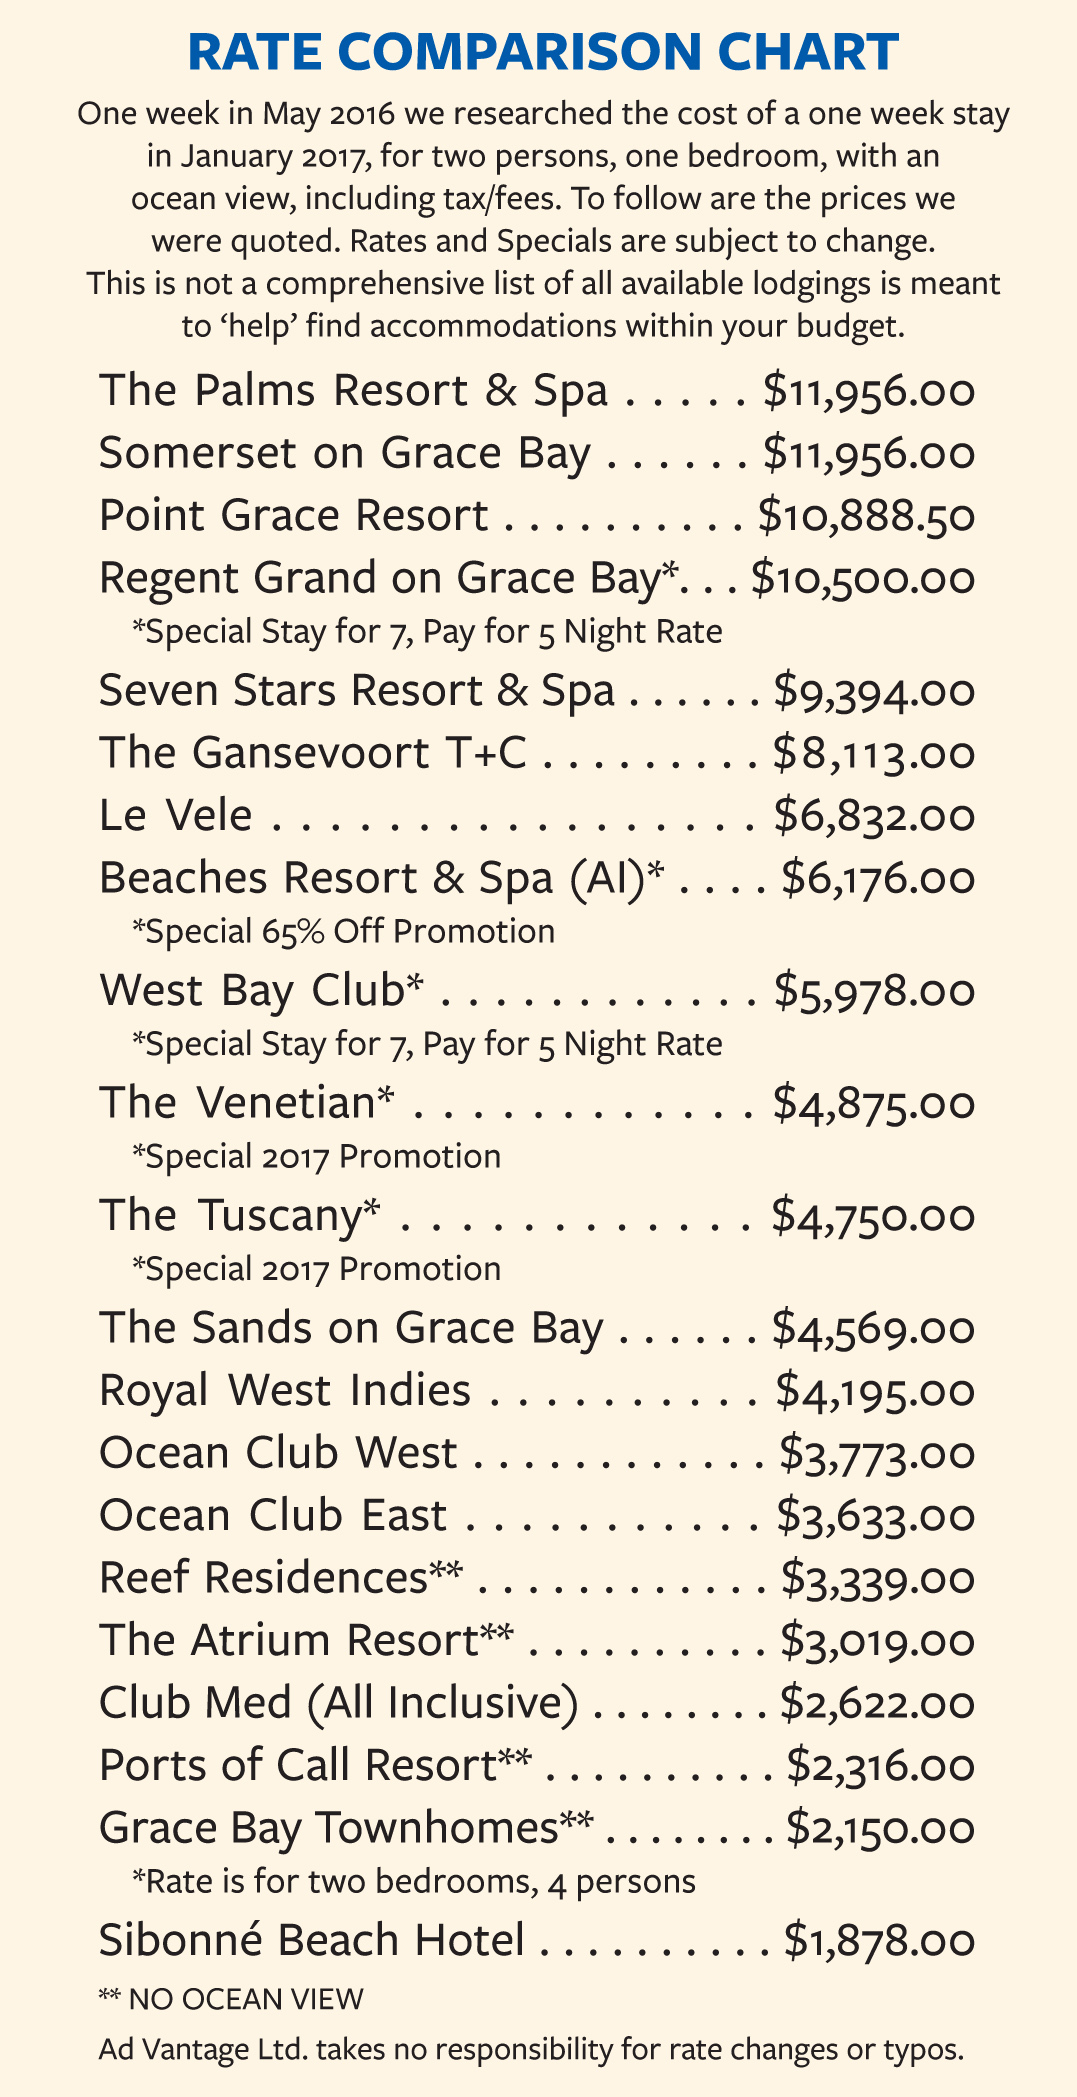 A comparison chart of hotel rates, Providenciales (Provo), Turks and Caicos Islands, British West Indies